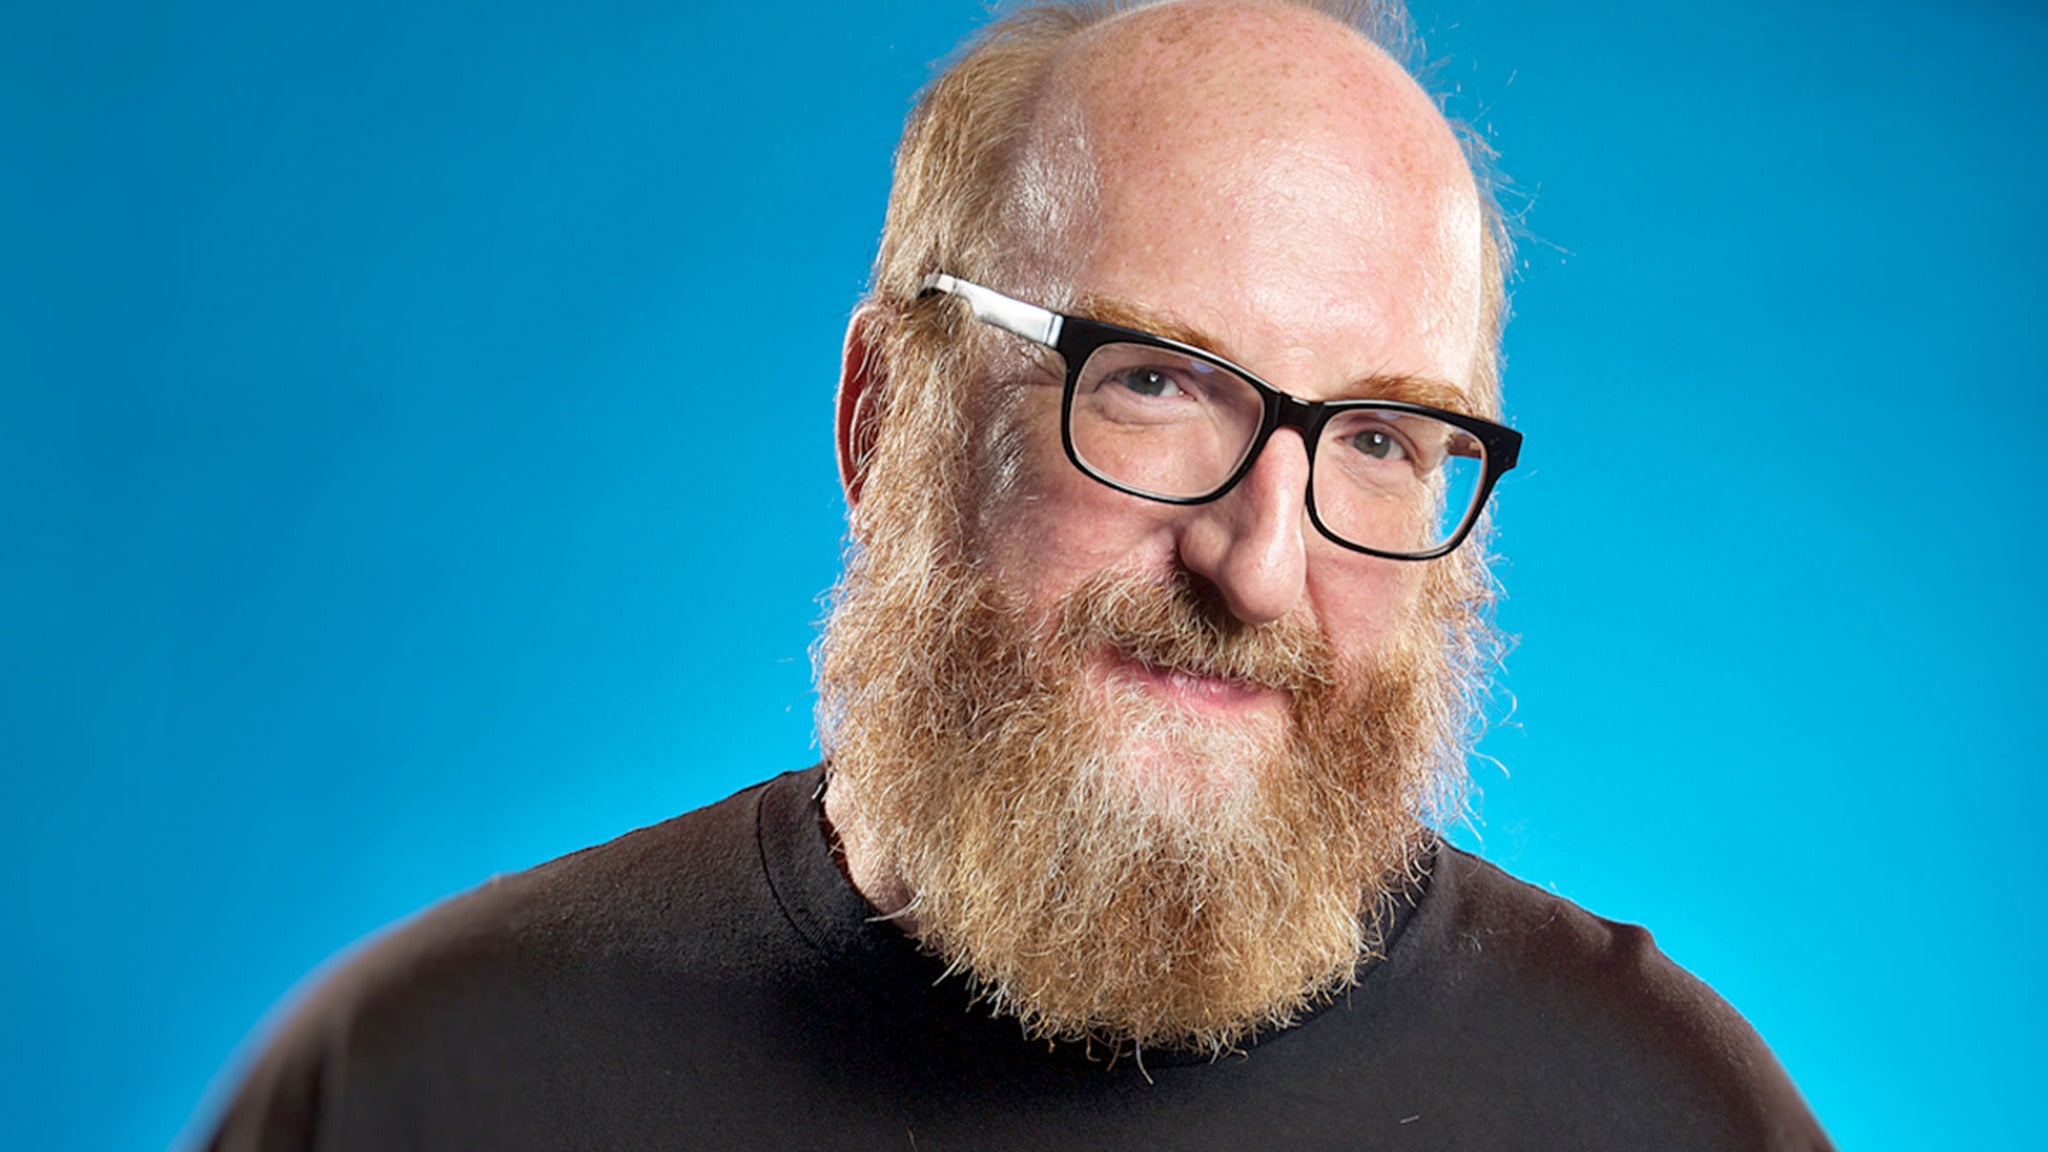 Brian Posehn at Cobb's Comedy Club